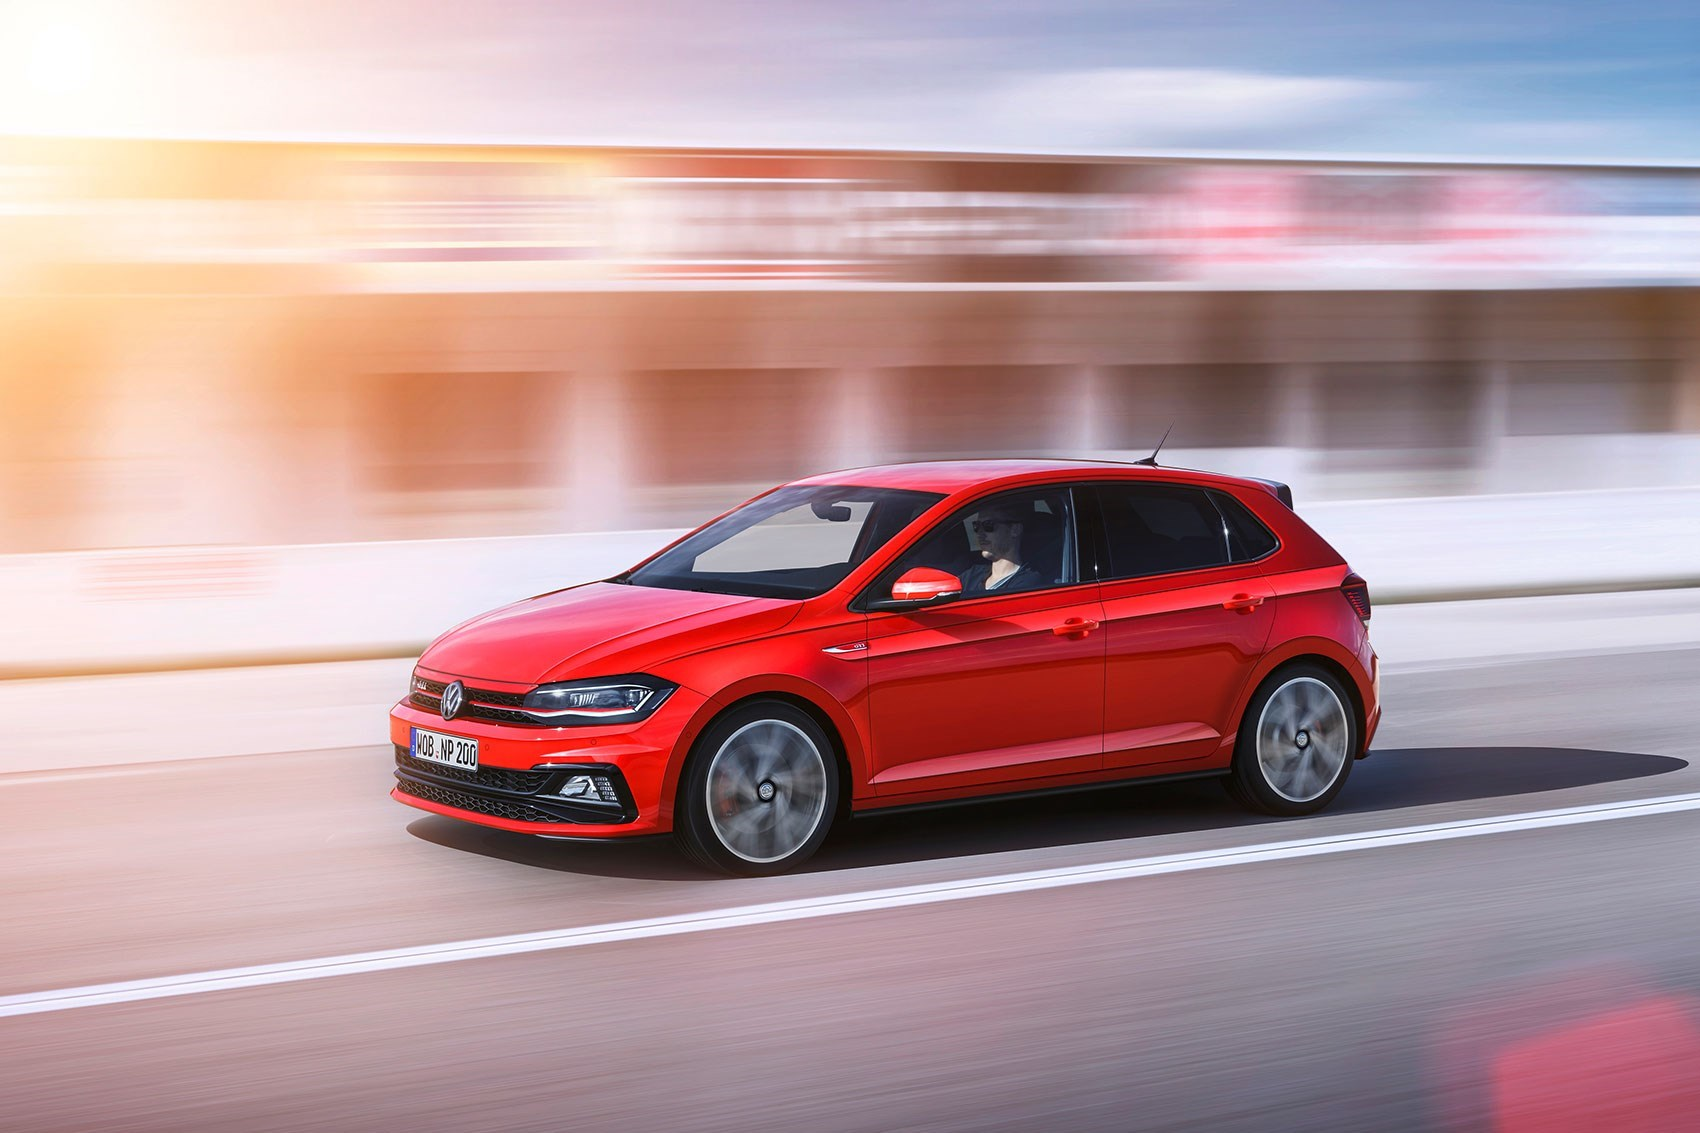 VW Polo GTI - the best small hot hatchbacks